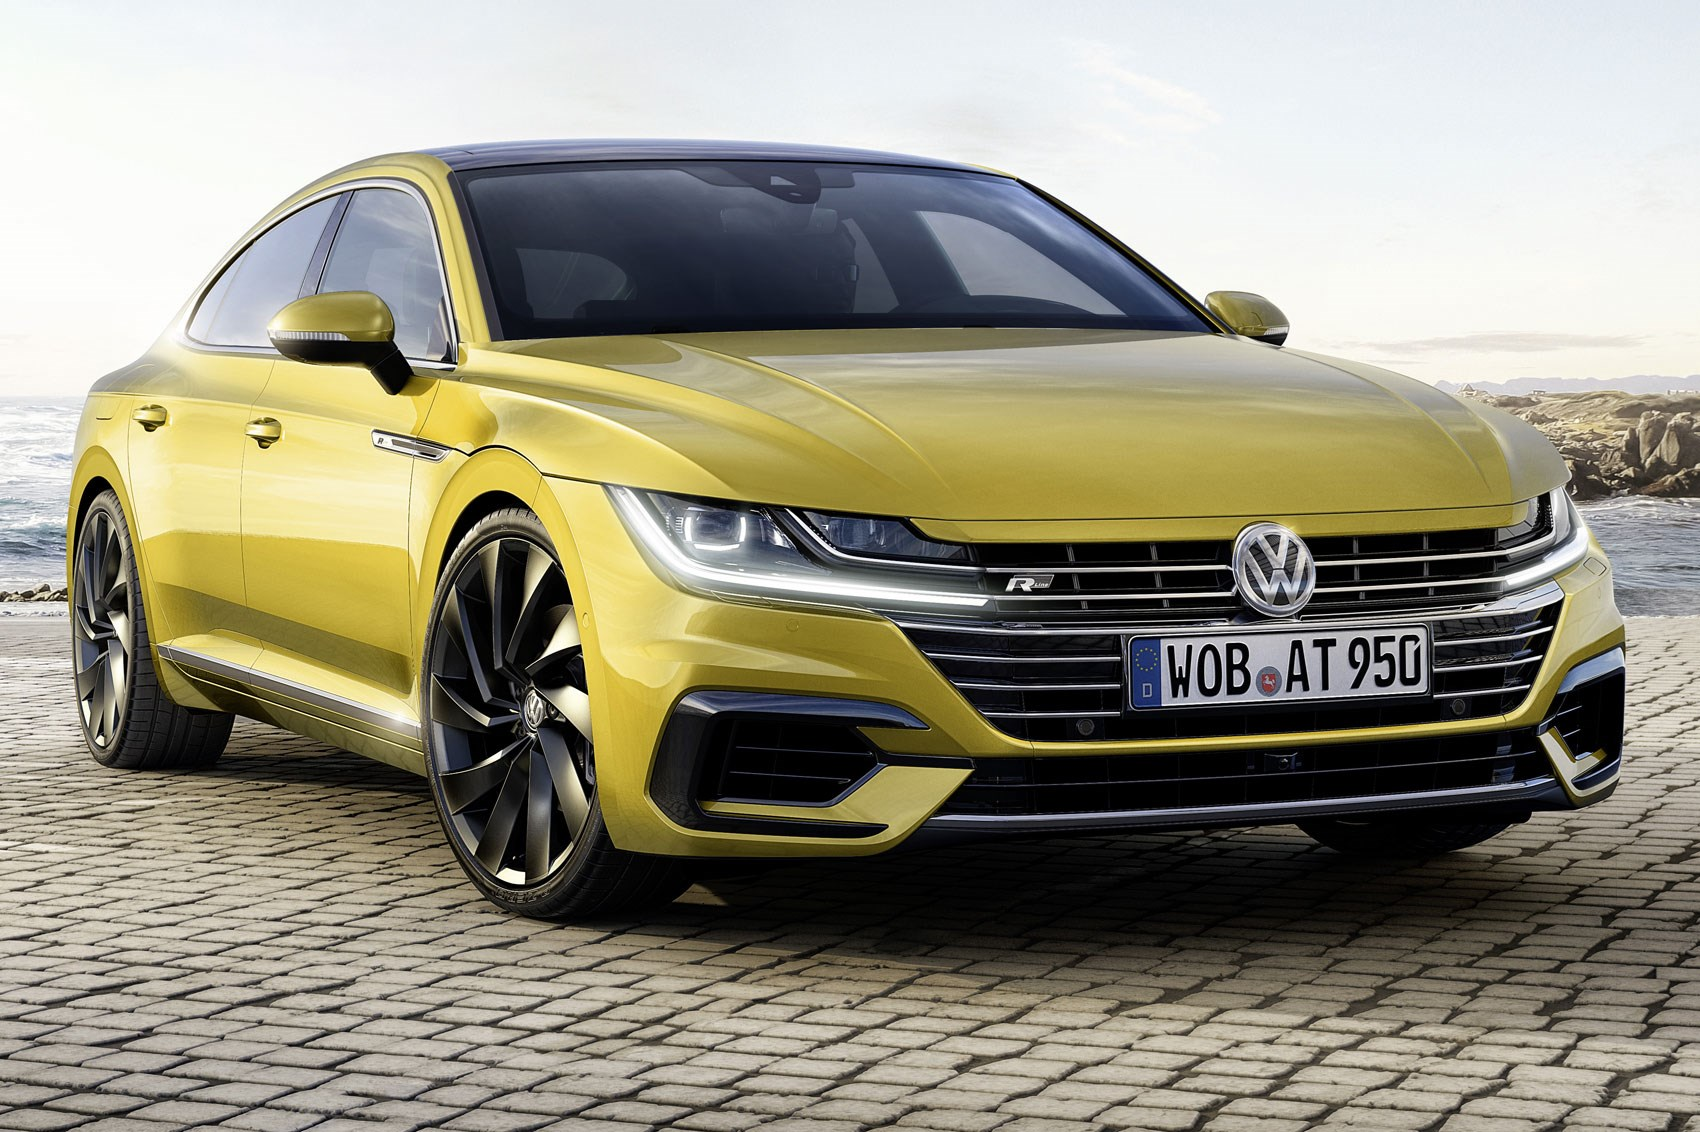 Lot of new cars coming in at moment looking to make some room have a - Vw Arteon Unveiled